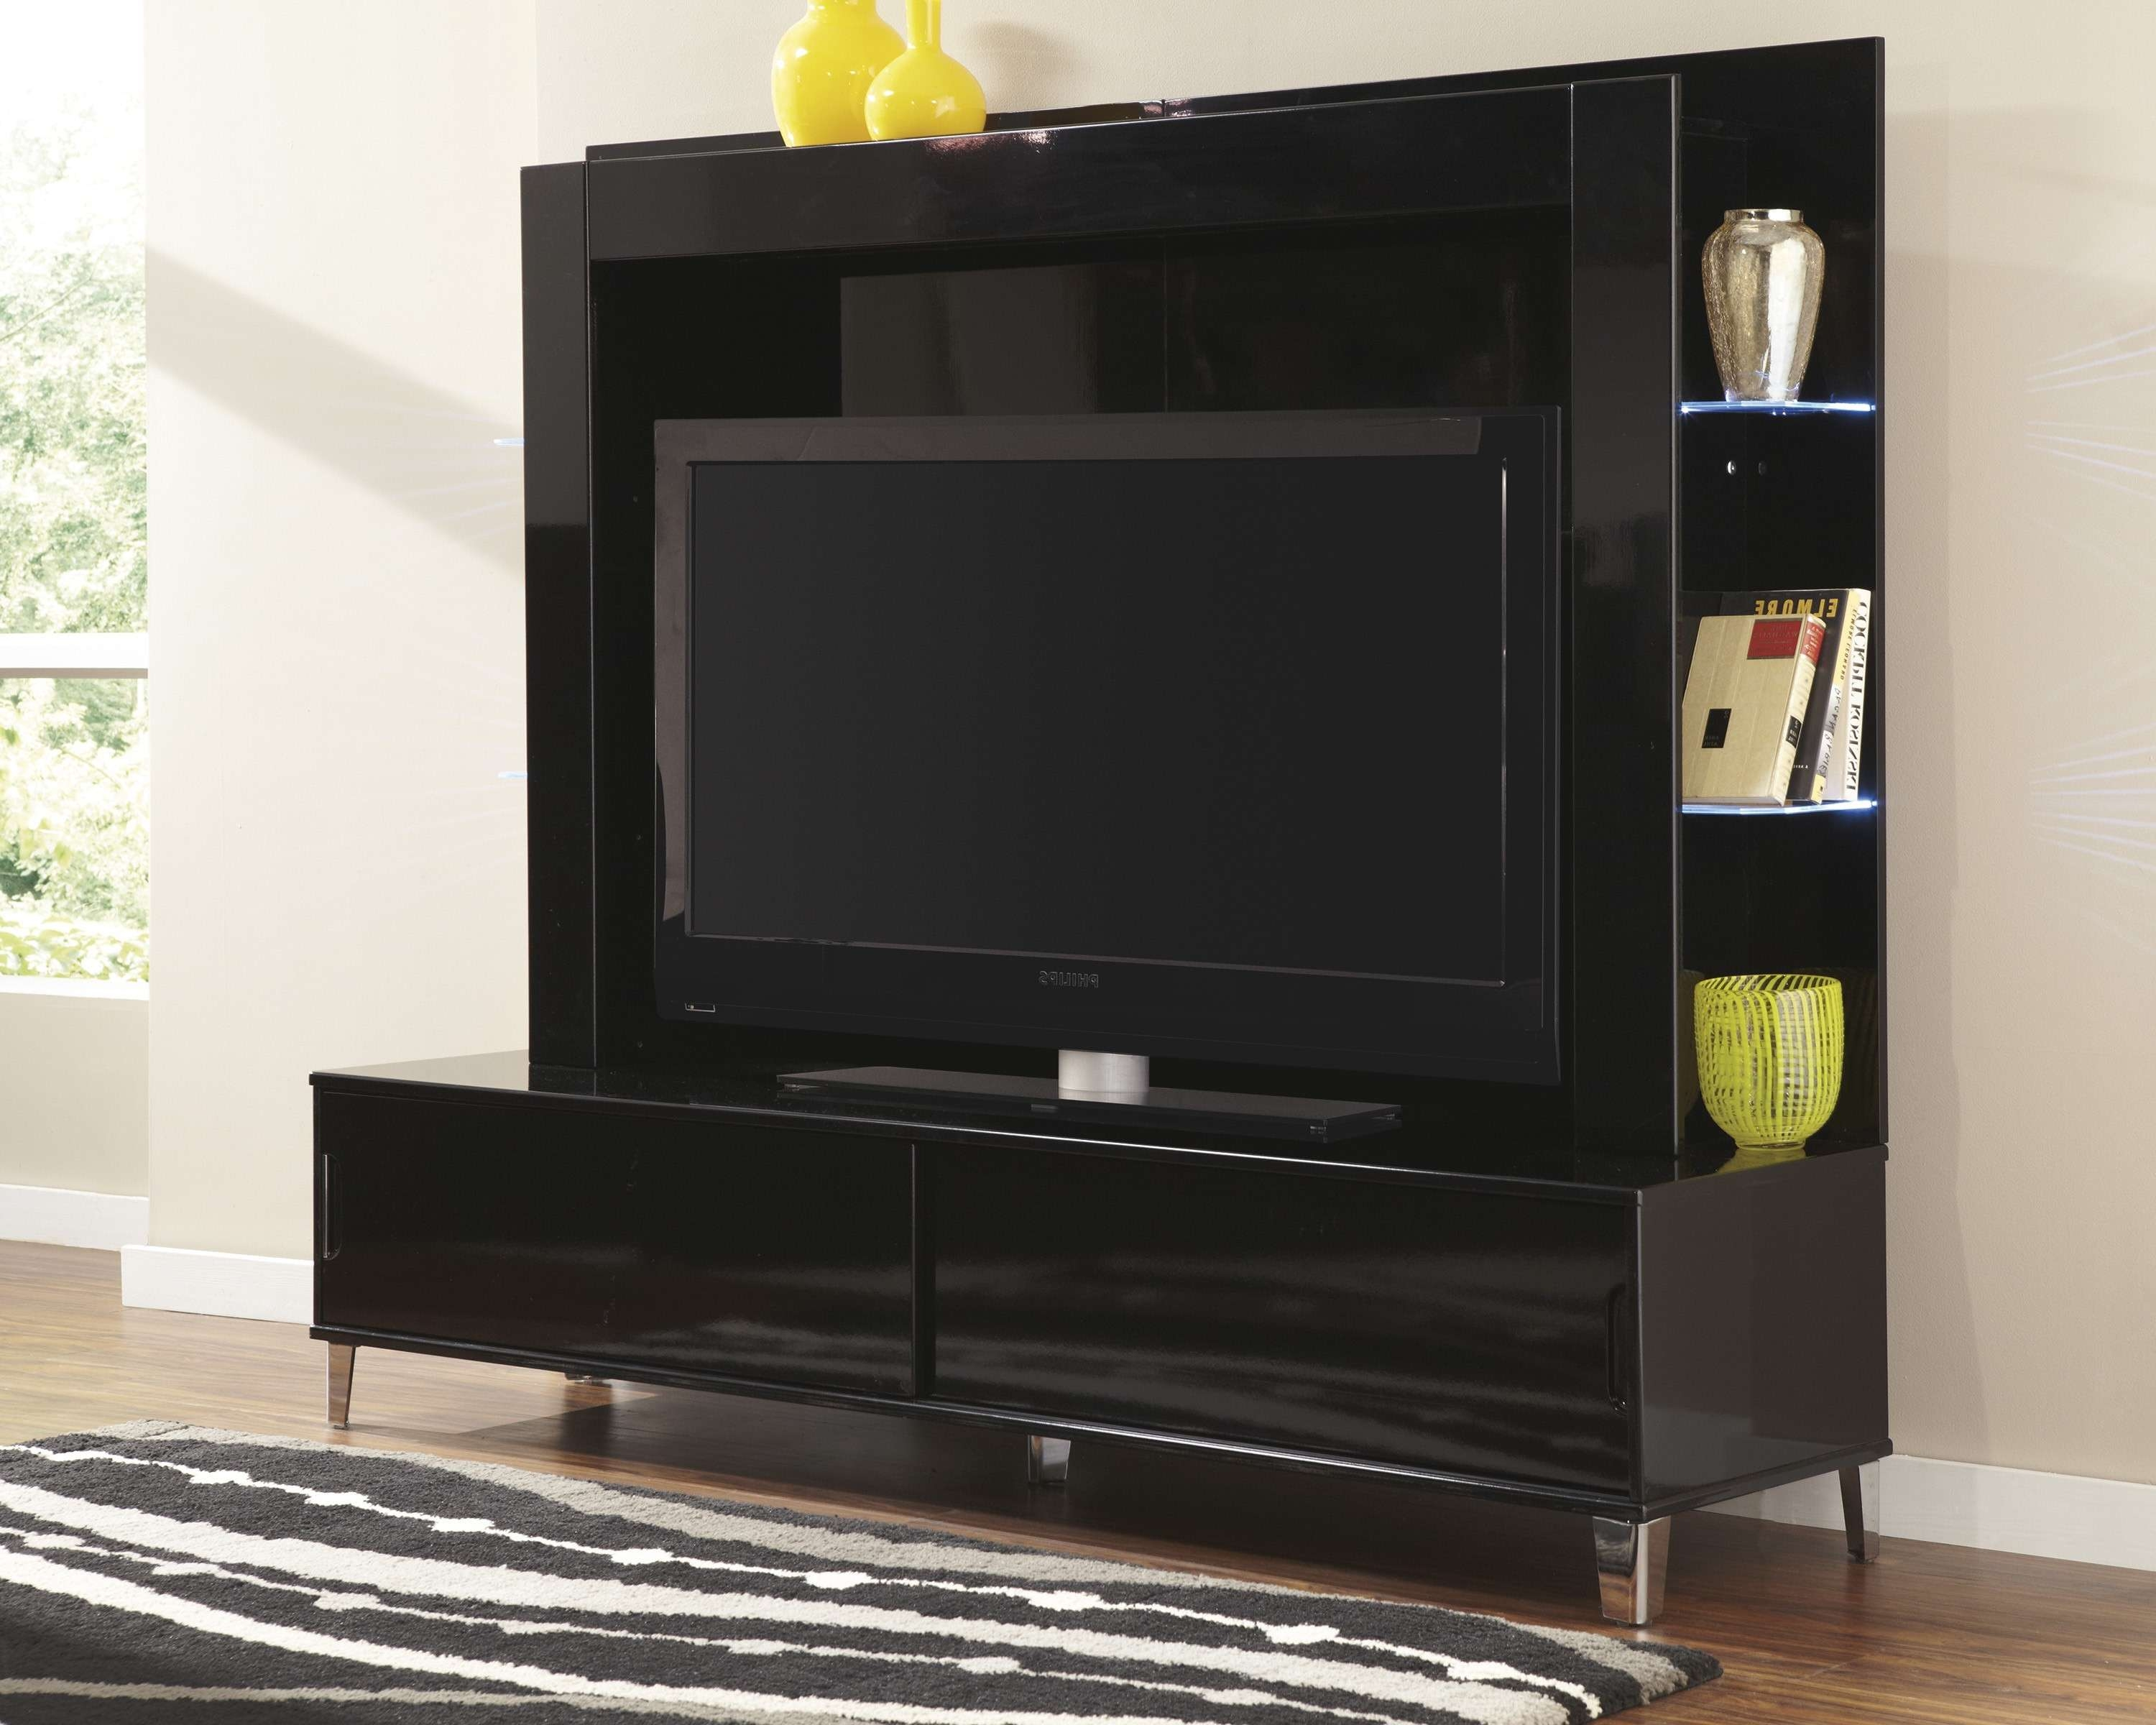 Bedrooms : Fascinating Flat Screen Tv Mount Stand Cream Wall Within Black Wood Corner Tv Stands (View 3 of 15)